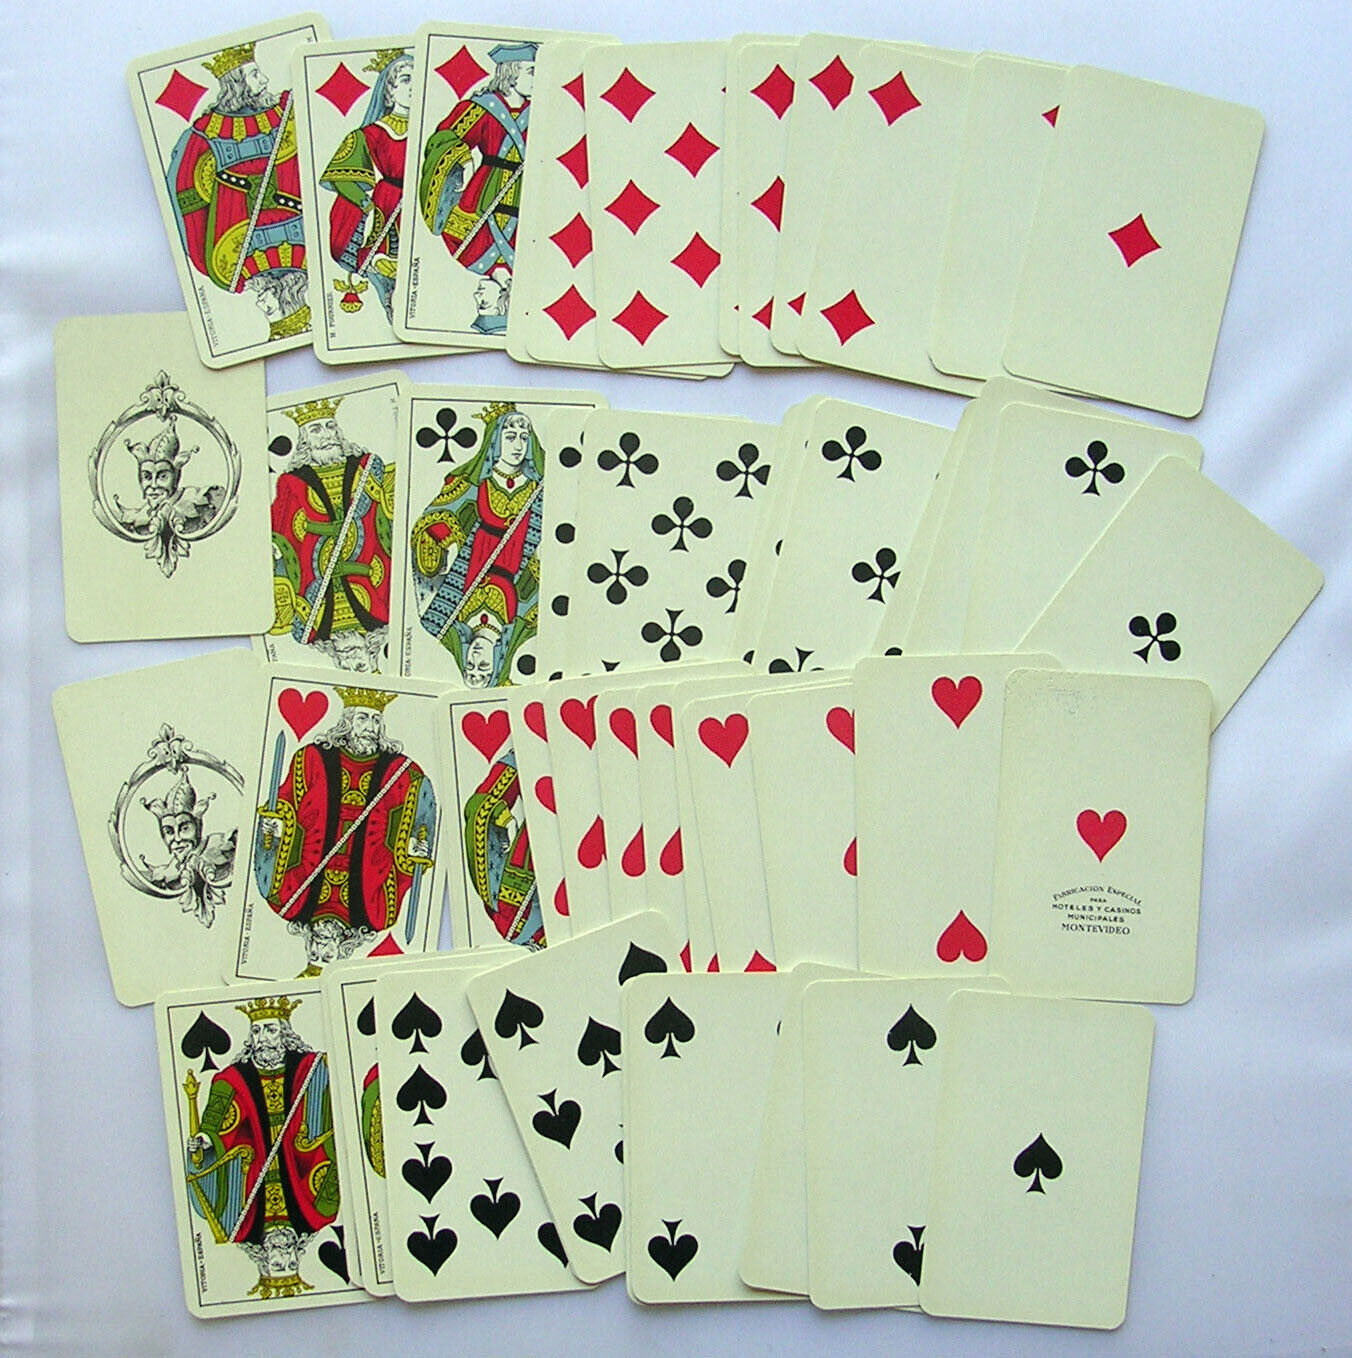 VINTAGE BARAJA JUEGO NAIPES COMPLETO PLAYING CARDS HOTELES CASINOS MONTEVIDEO